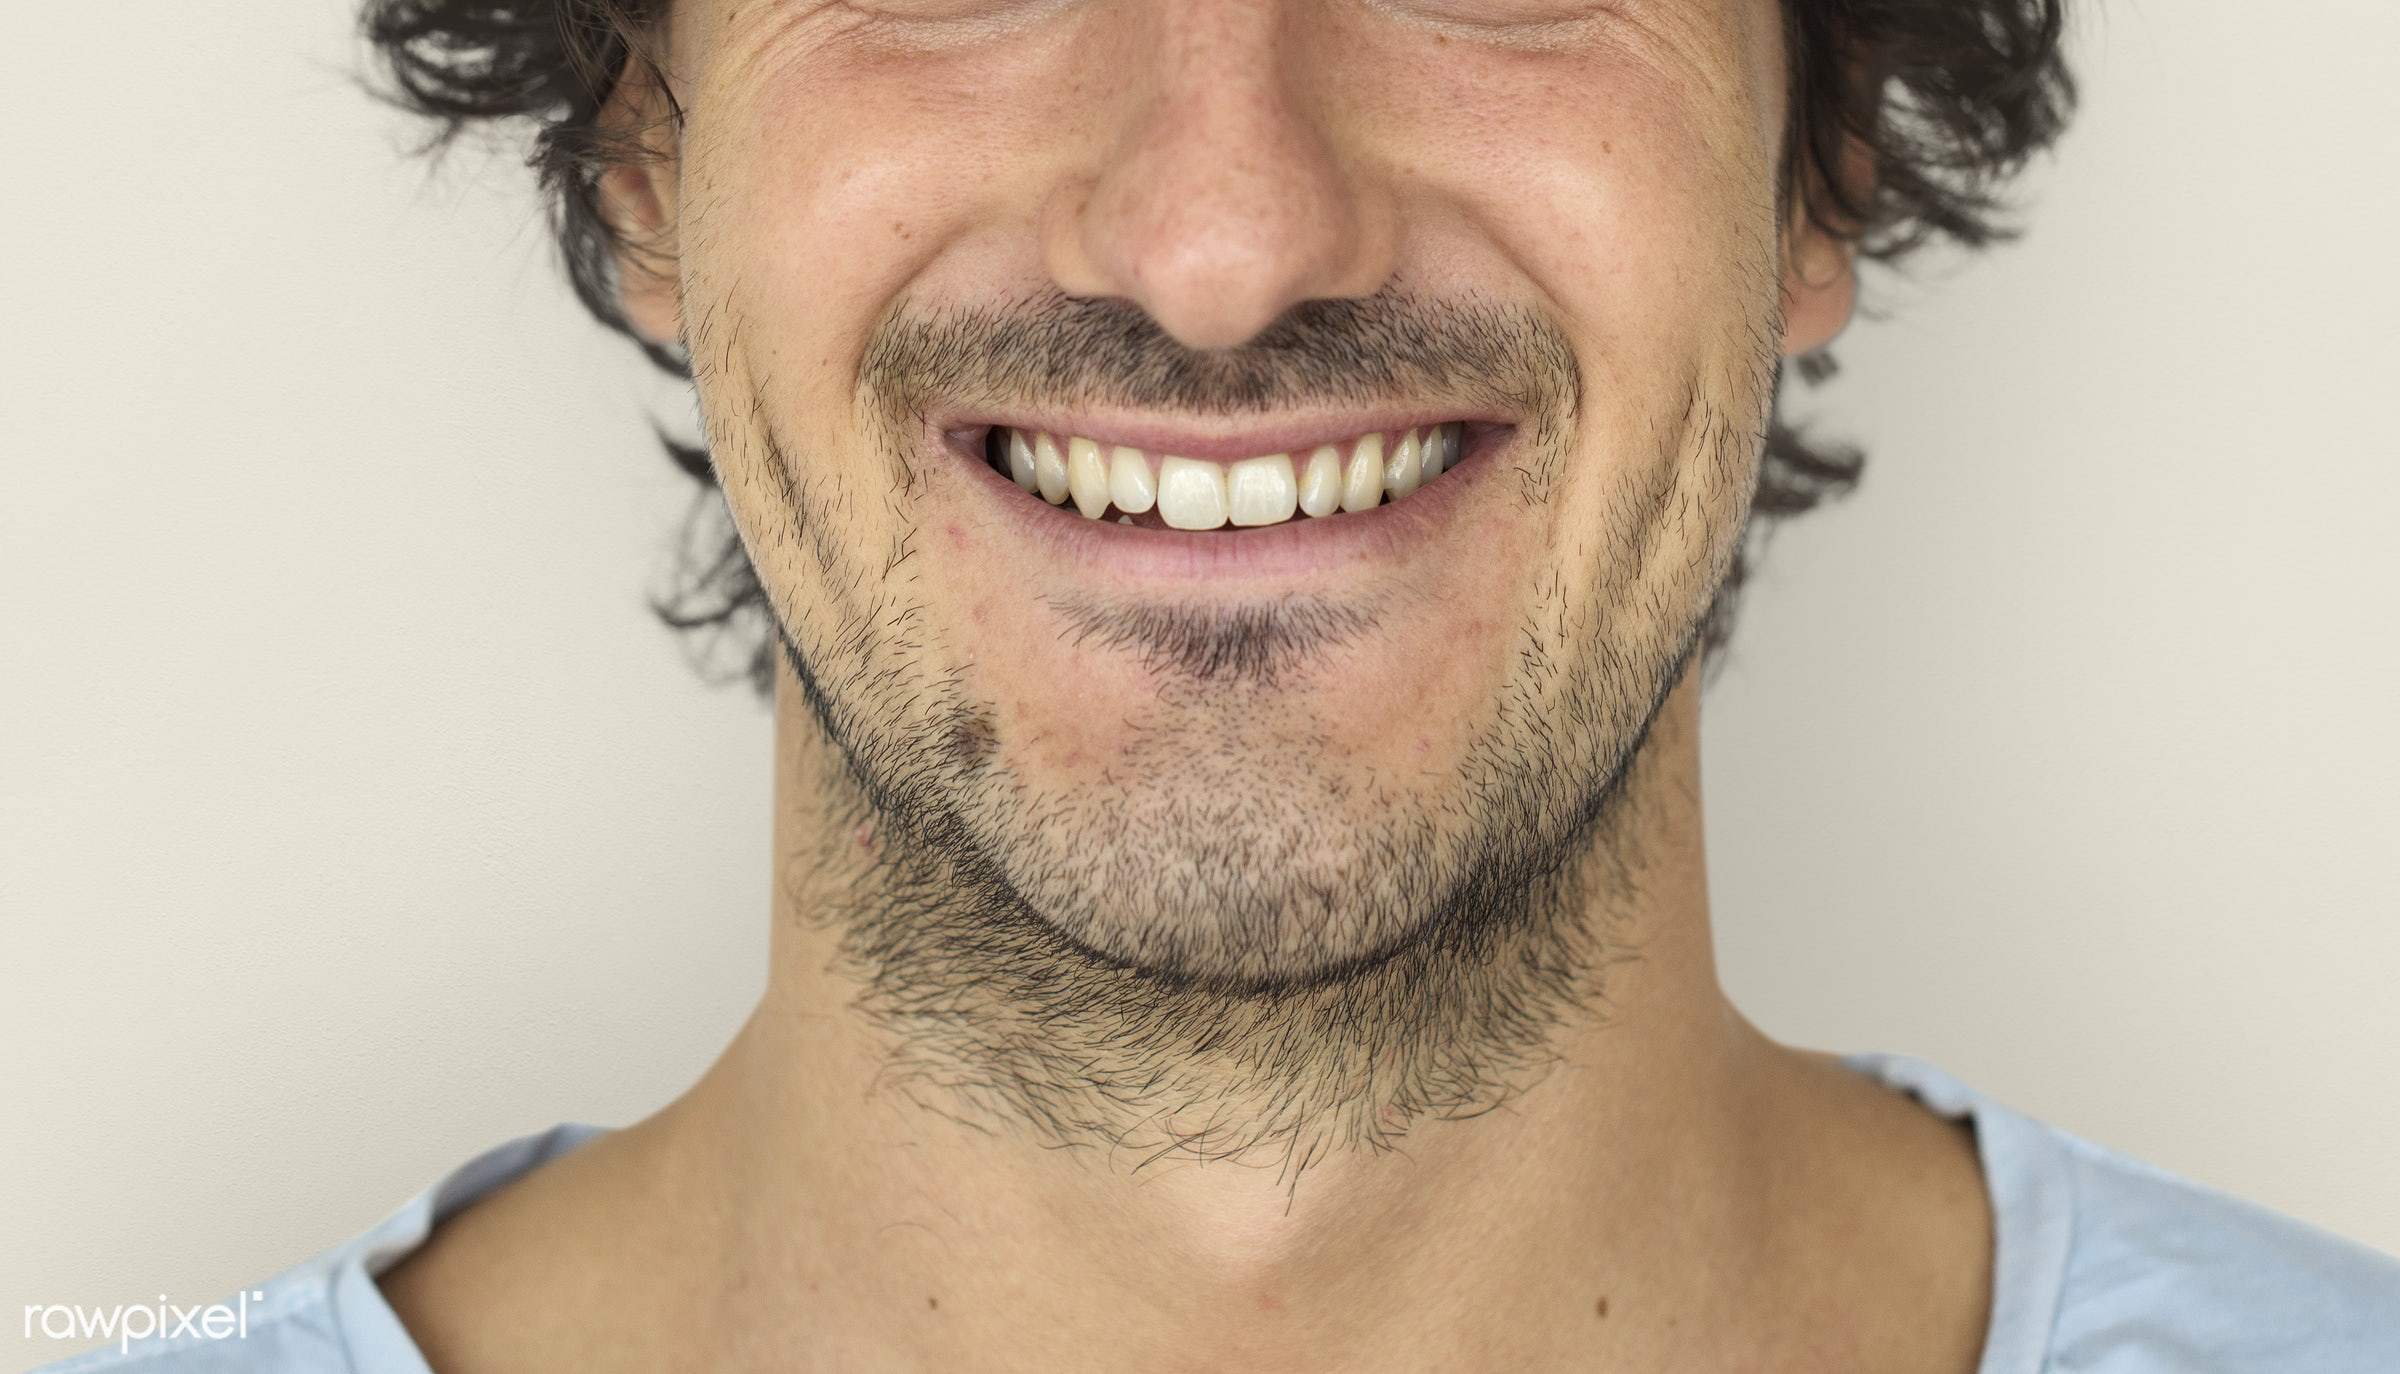 expression, studio, model, person, freedom, relax, optimistic, people, caucasian, laughing, casual, lifestyle, westerner,...